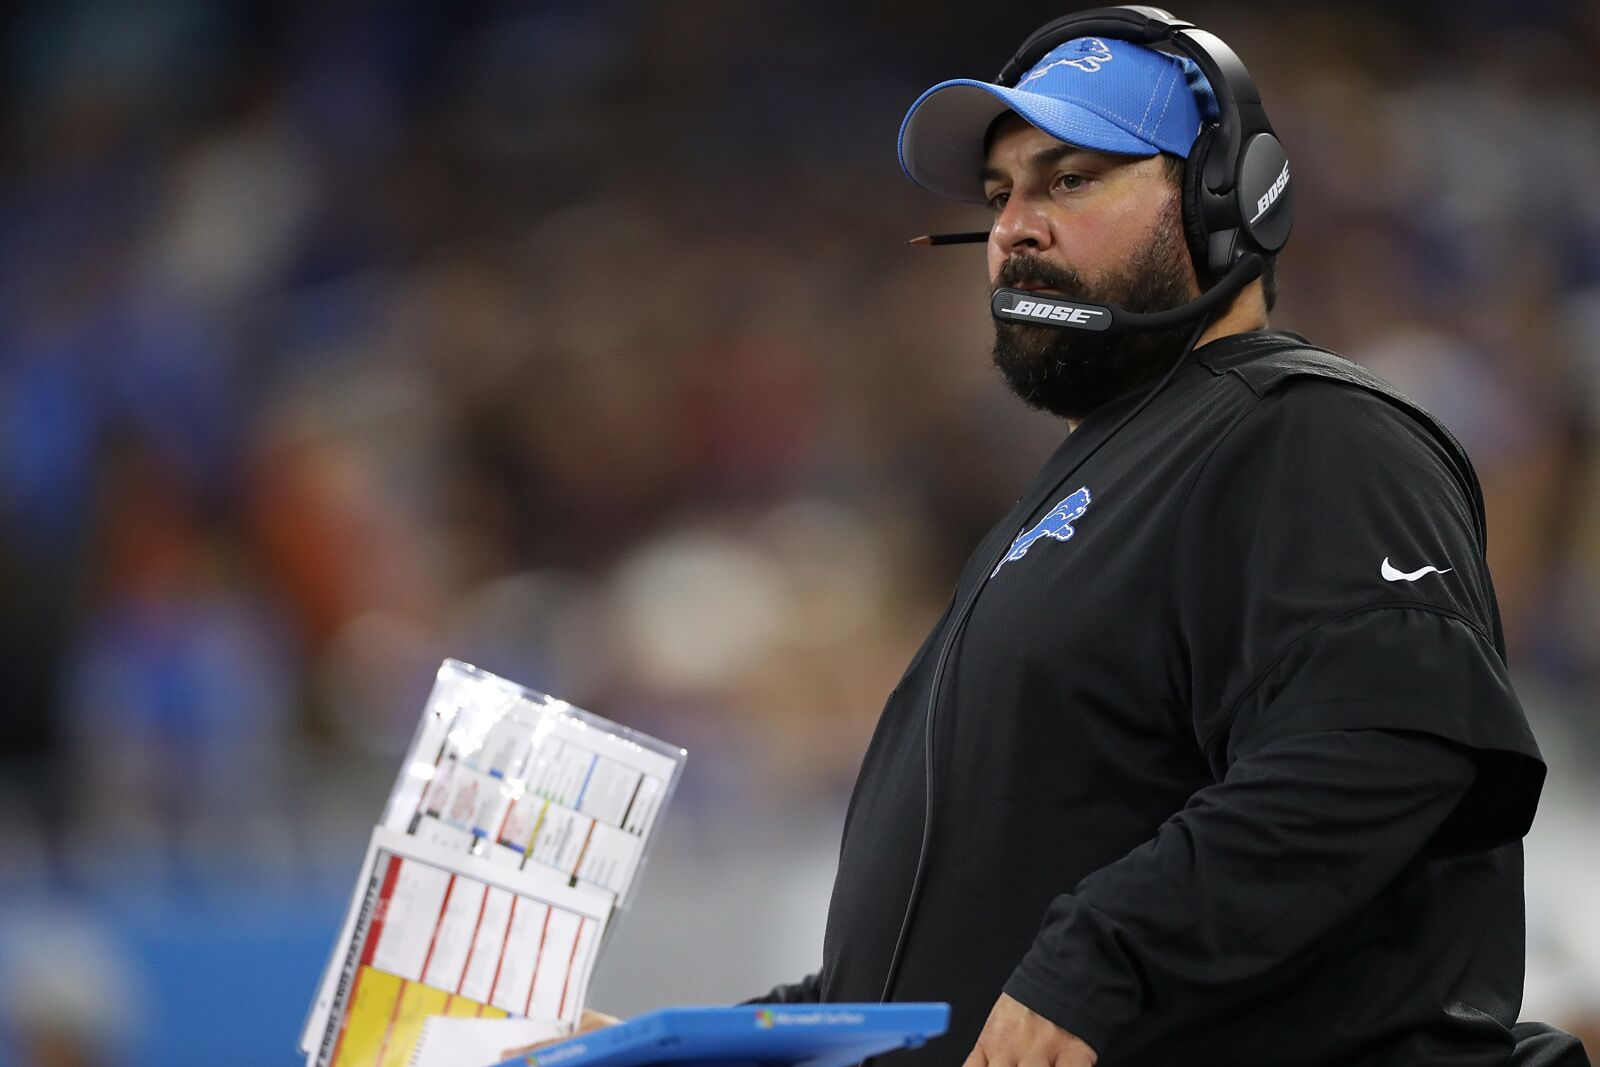 Detroit Lions: Key for Matt Patricia is pressure without blitzing